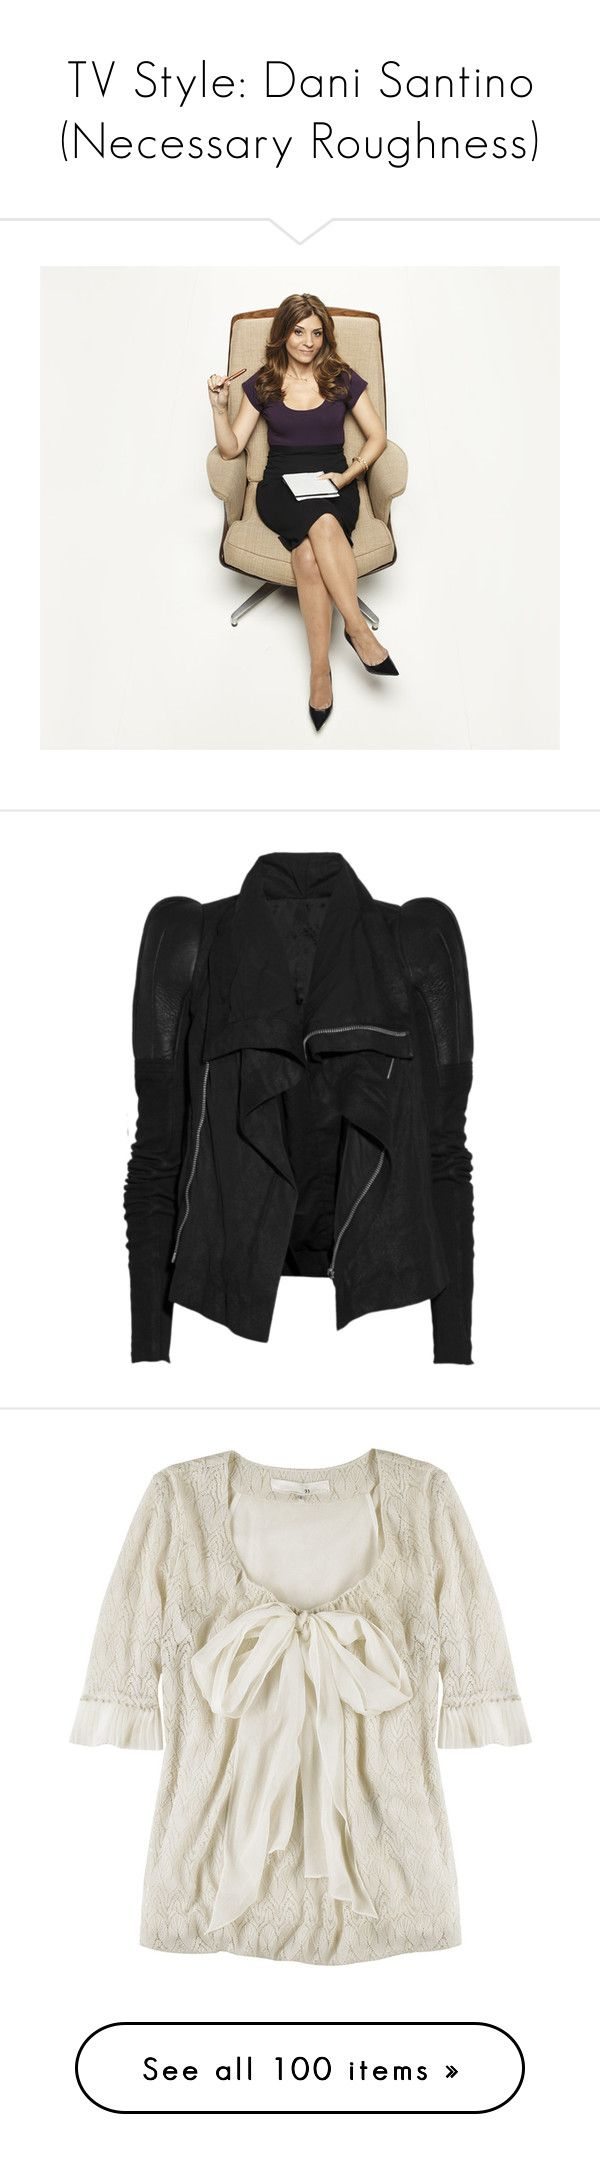 """TV Style: Dani Santino (Necessary Roughness)"" by sinetimore ❤ liked on Polyvore featuring usa network, outerwear, jackets, coats, tops, rick owens jacket, drape jacket, collar jacket, drapey jacket and zipper jacket"